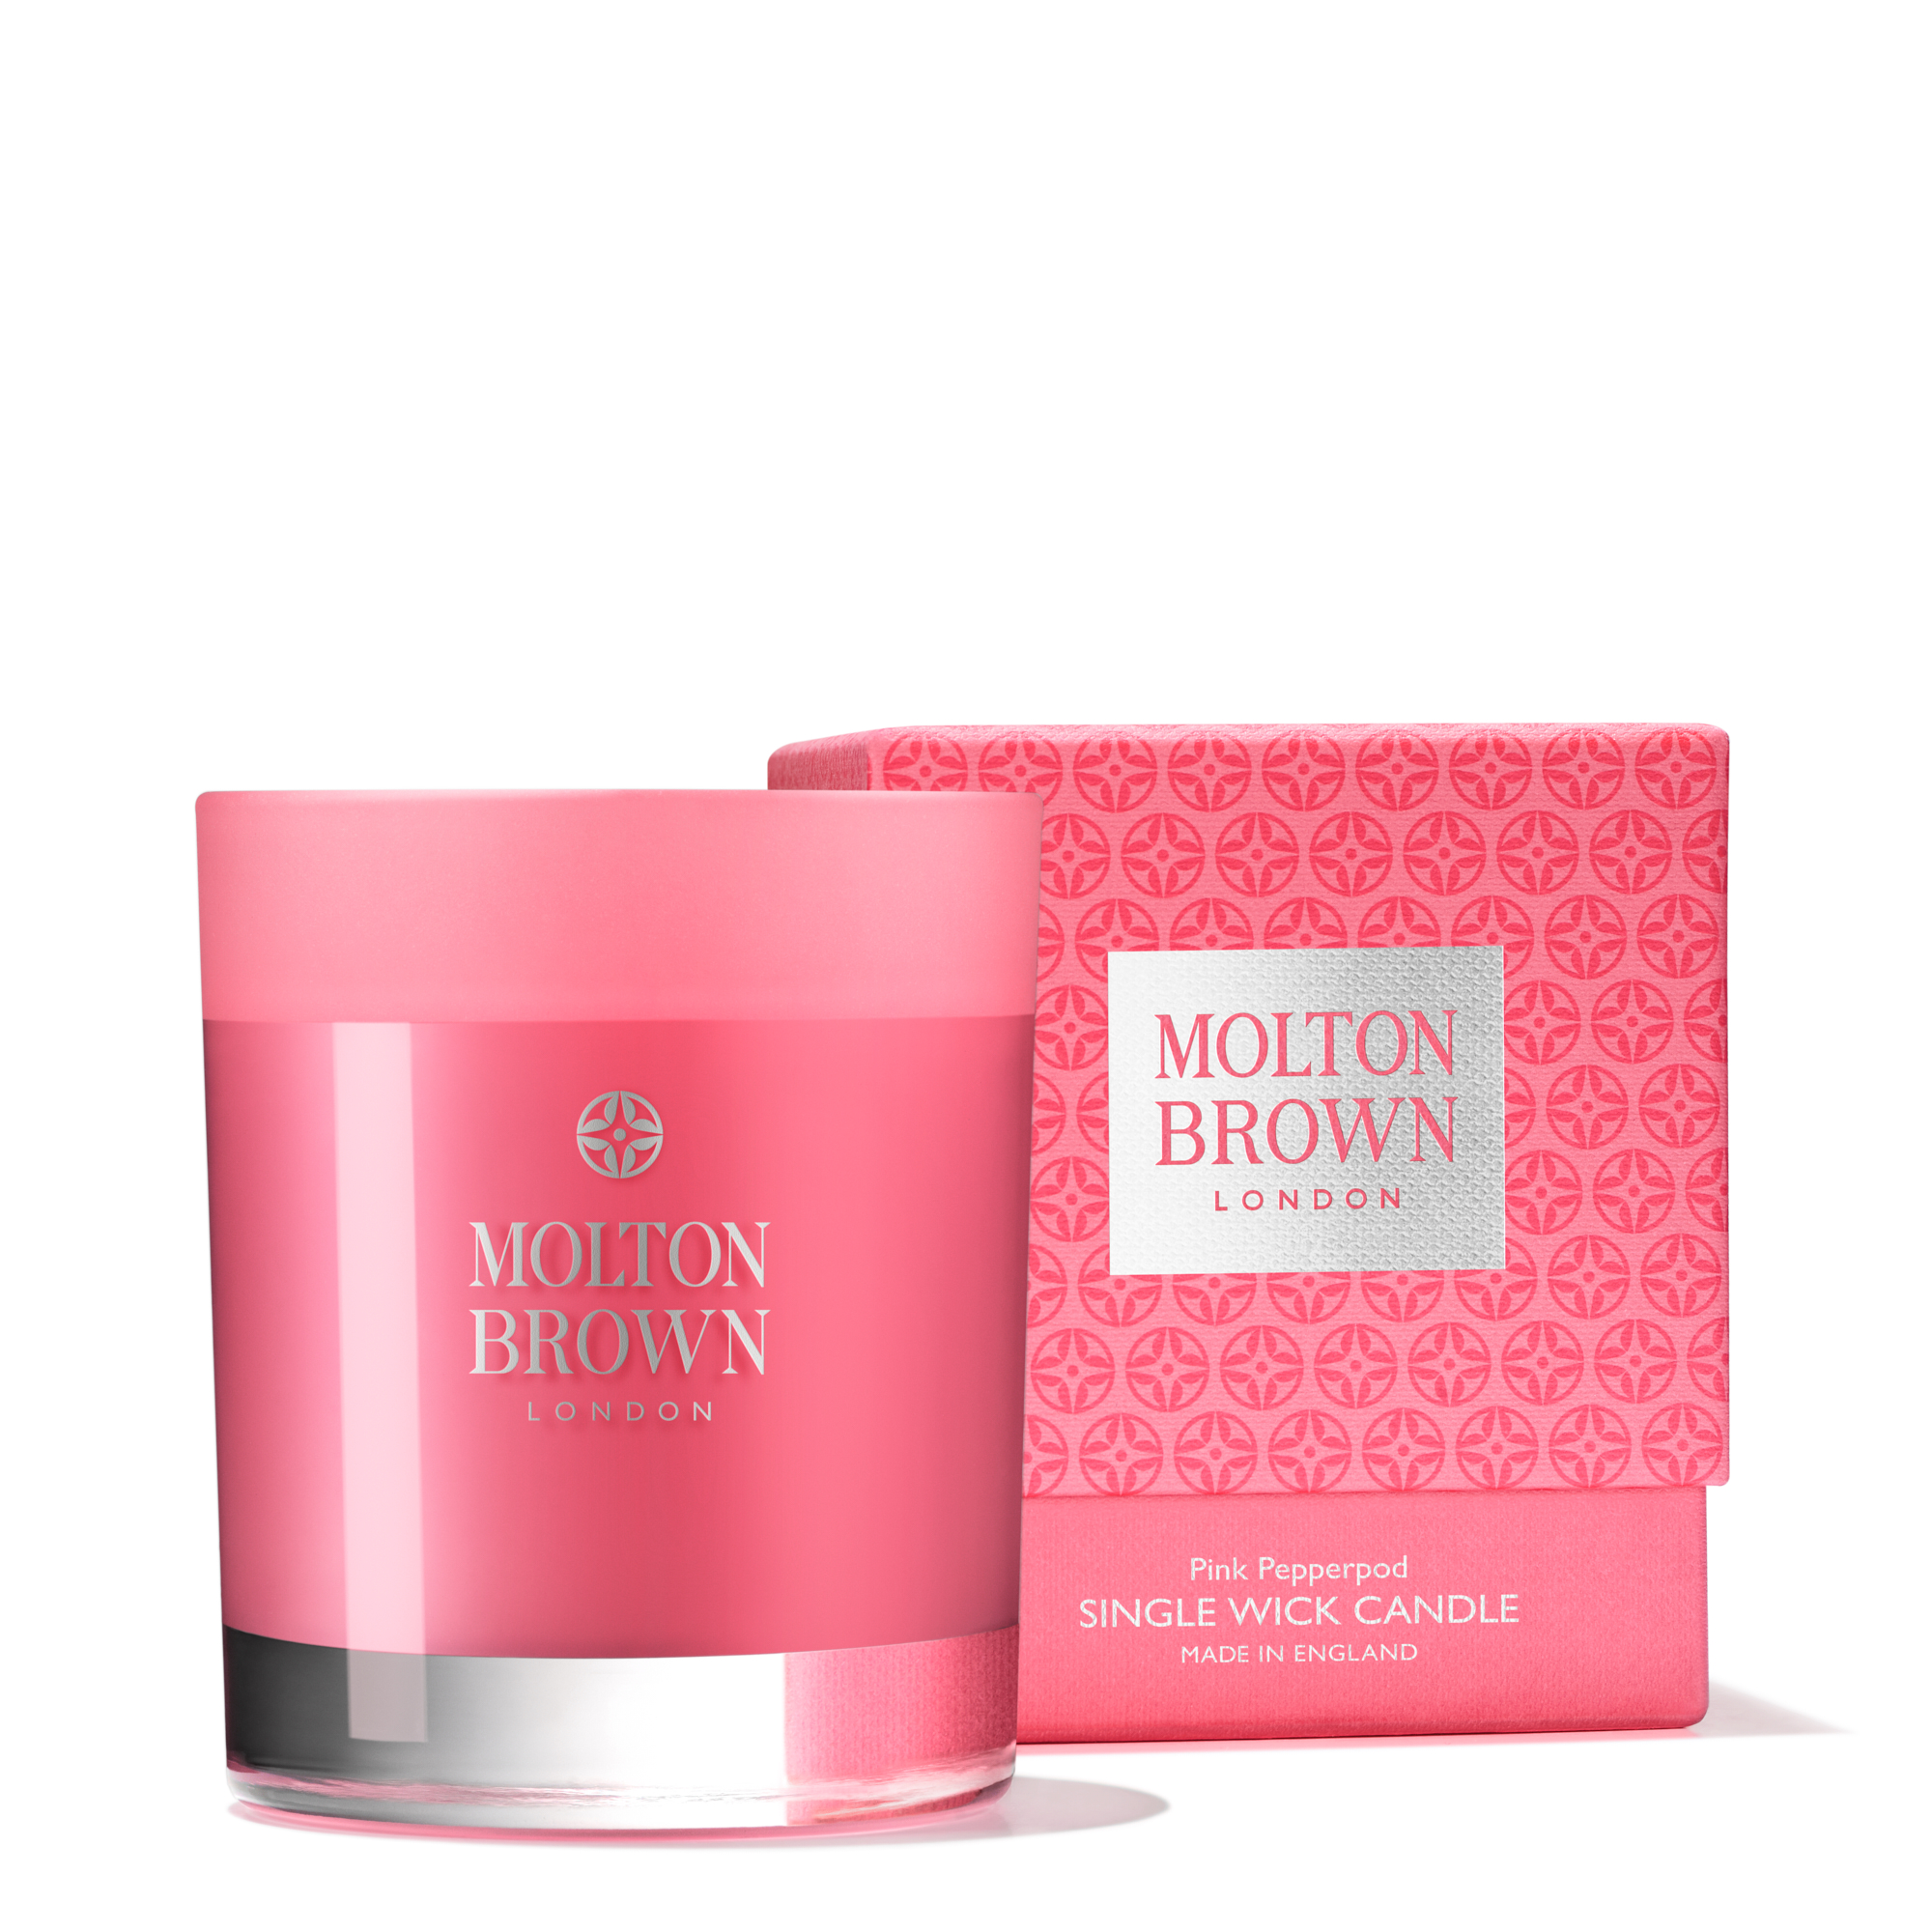 MOLTON BROWN Rose Pepperpod unique Wick Candle 180 g Brand New in Box